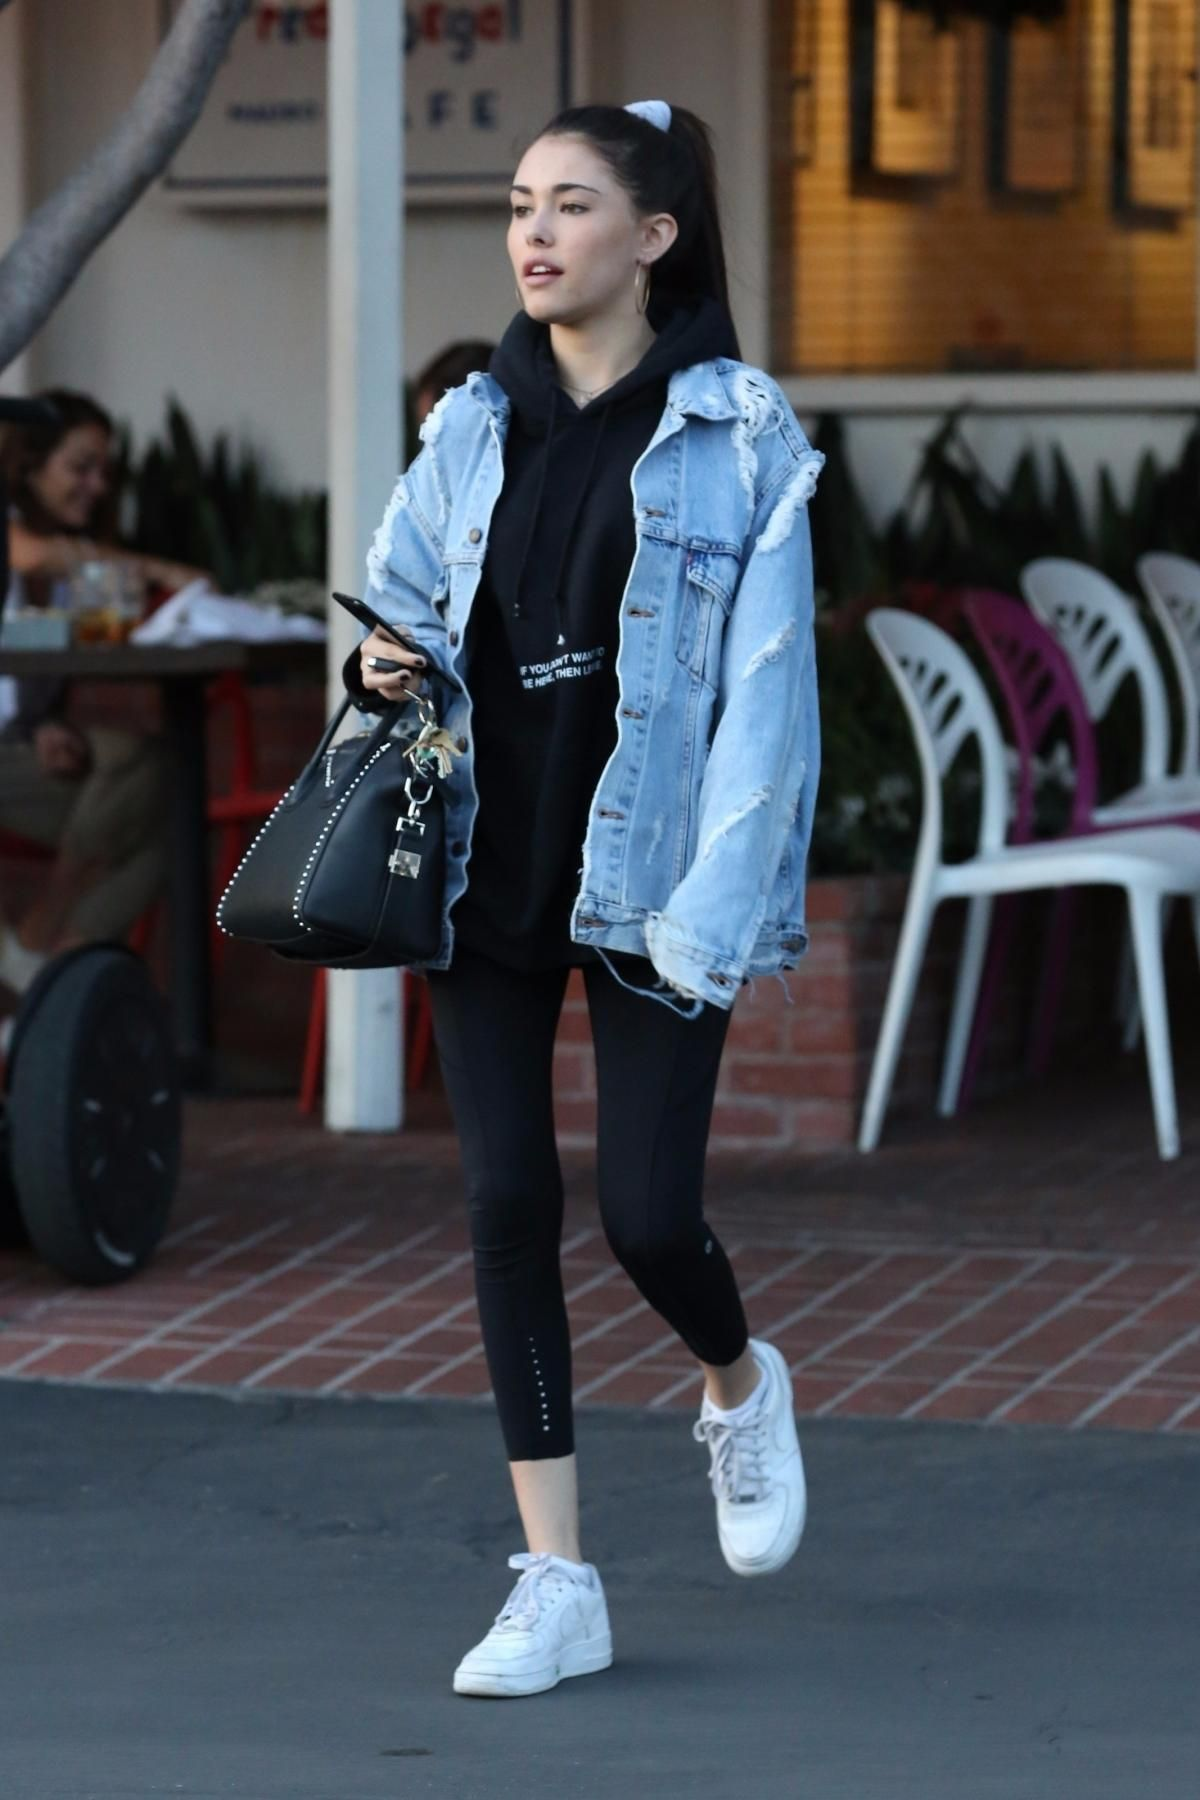 Ron Holt on in 2019 | Madison beer outfits, Sneakers fashion